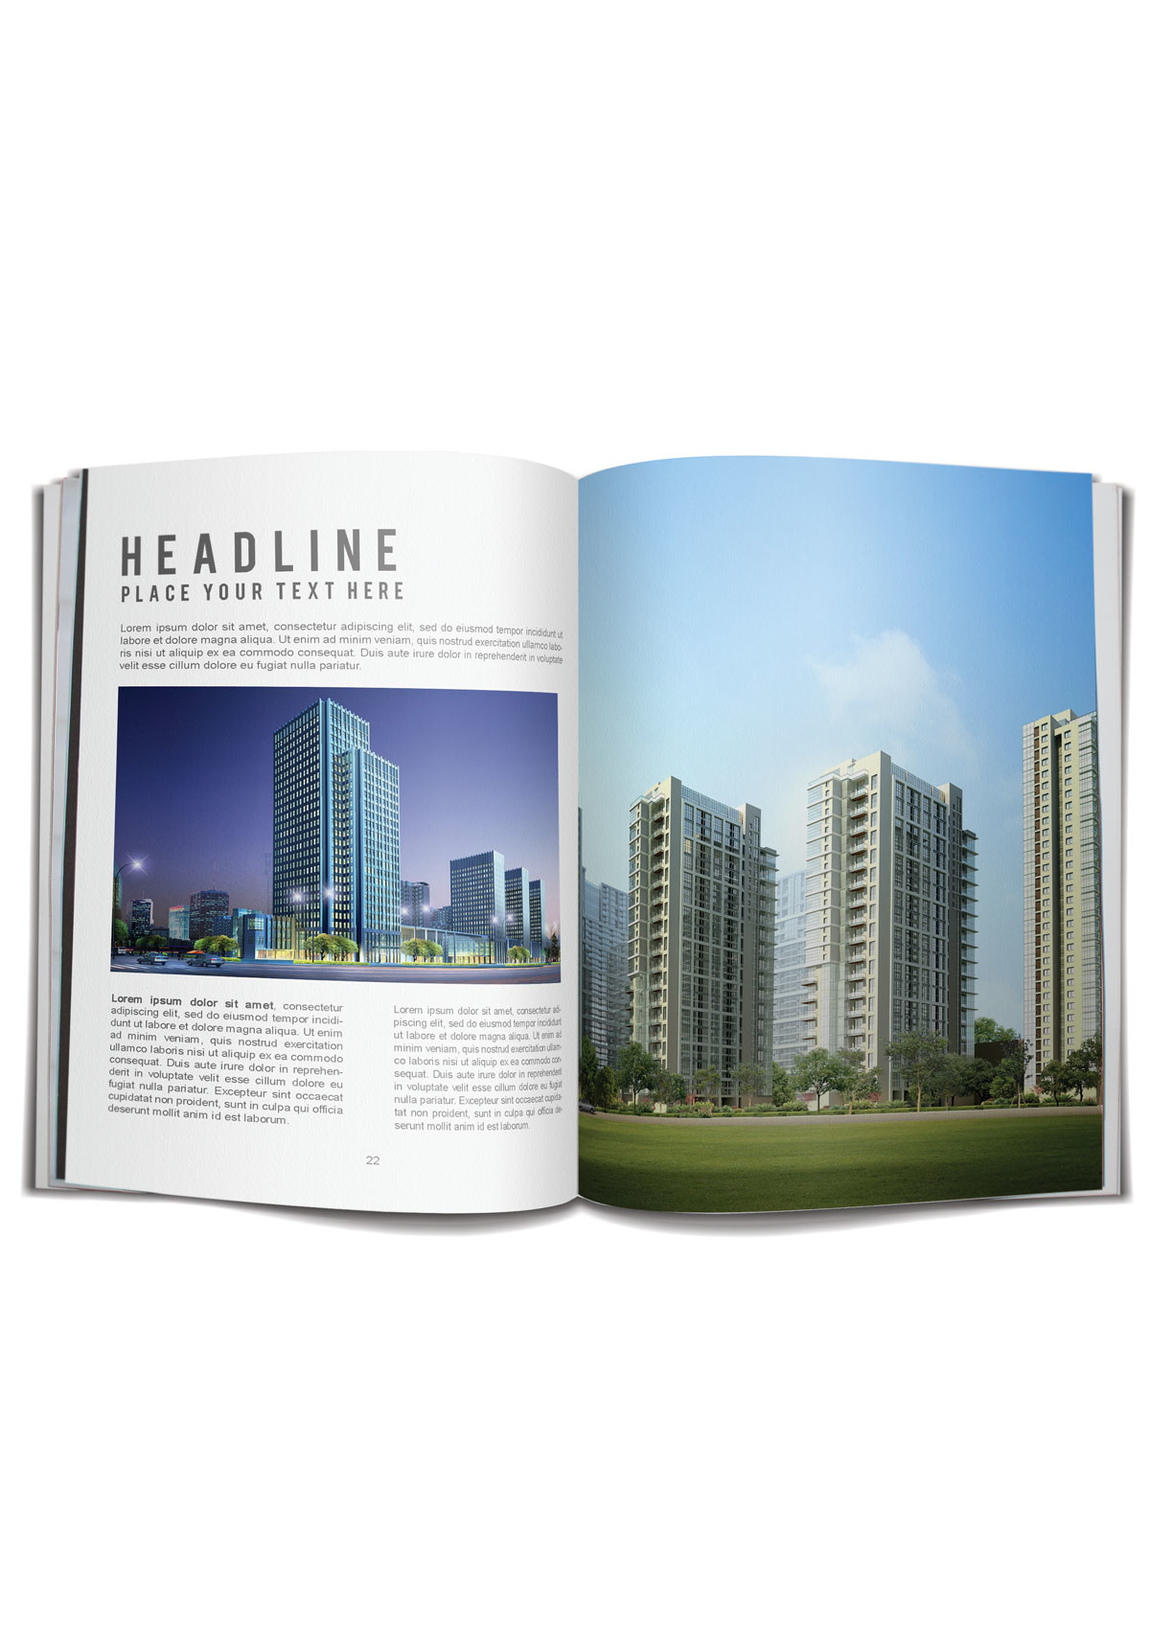 Yantram Studio - Real Estate Booklet Ideas By Real Estate Digital Branding Agency - New York, USA